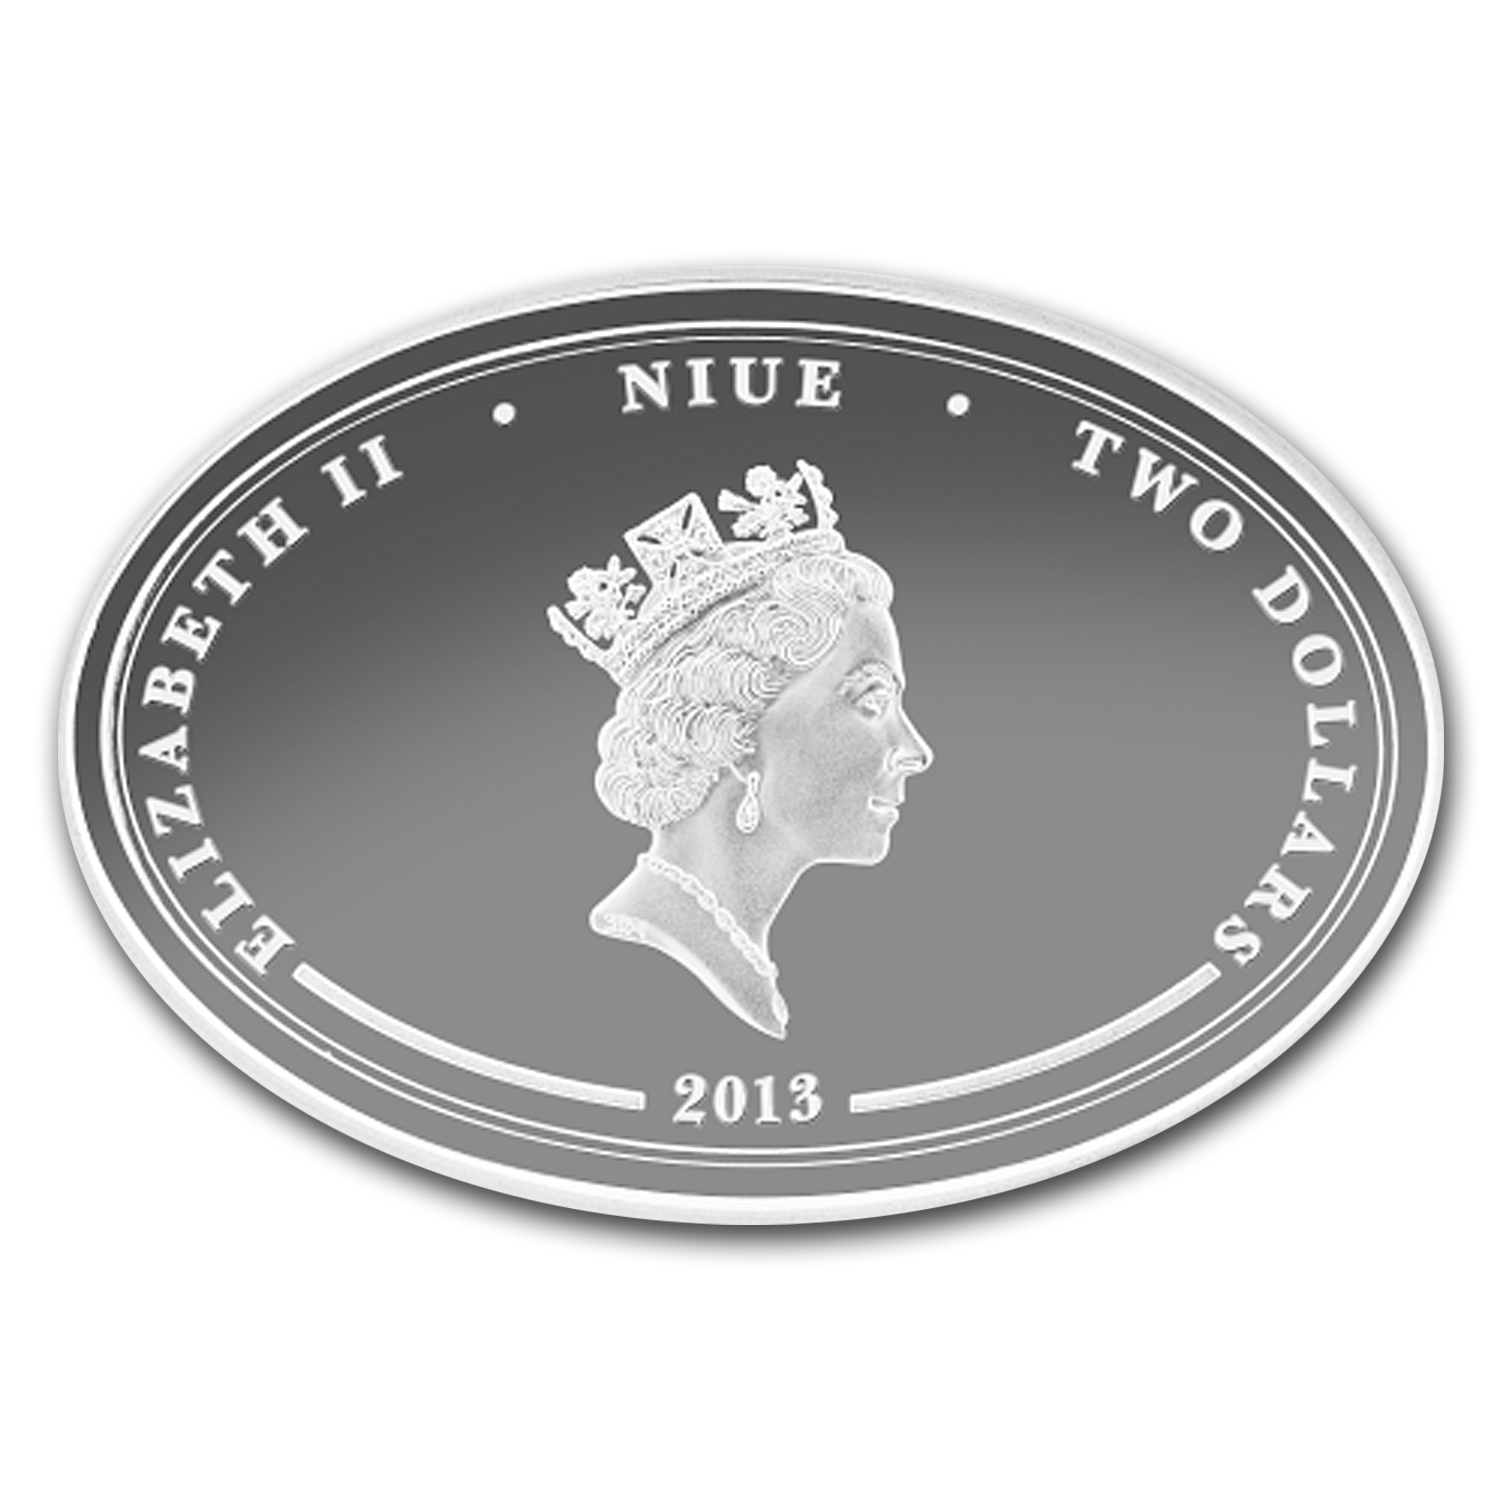 2013 Niue 1 oz Silver $2 Lunar Year of the Snake Lucky Oval Coin